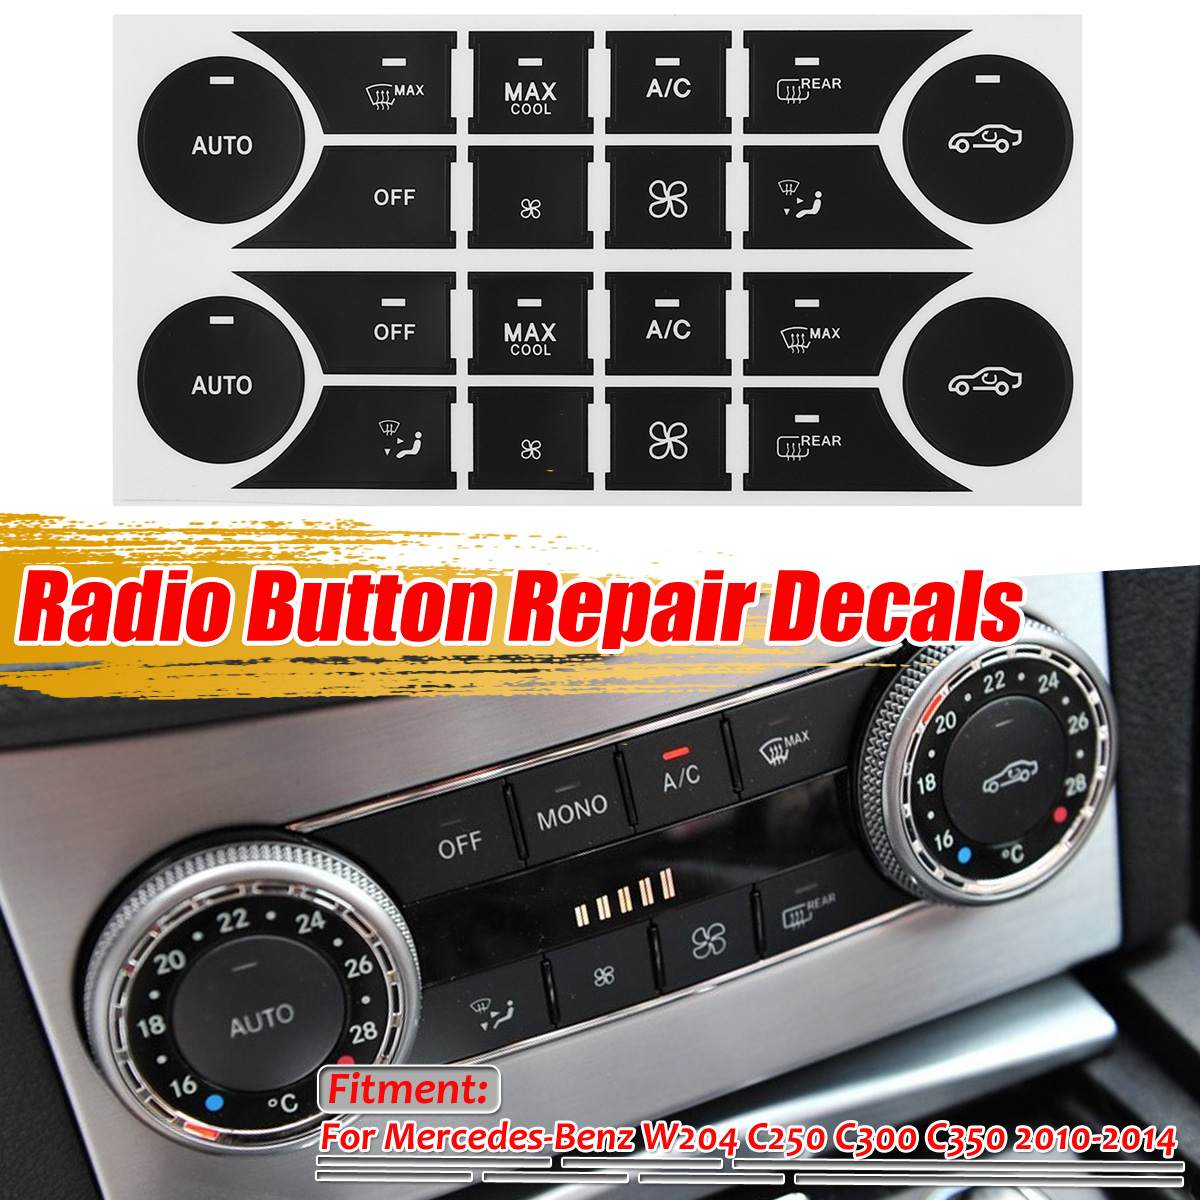 Car A/C Radio Button Repair Sticker Decals For <font><b>Mercedes</b></font> For Benz W204 C250 <font><b>C300</b></font> C350 2010 2011 <font><b>2012</b></font> 2013 2014 Fix Ugly Button image